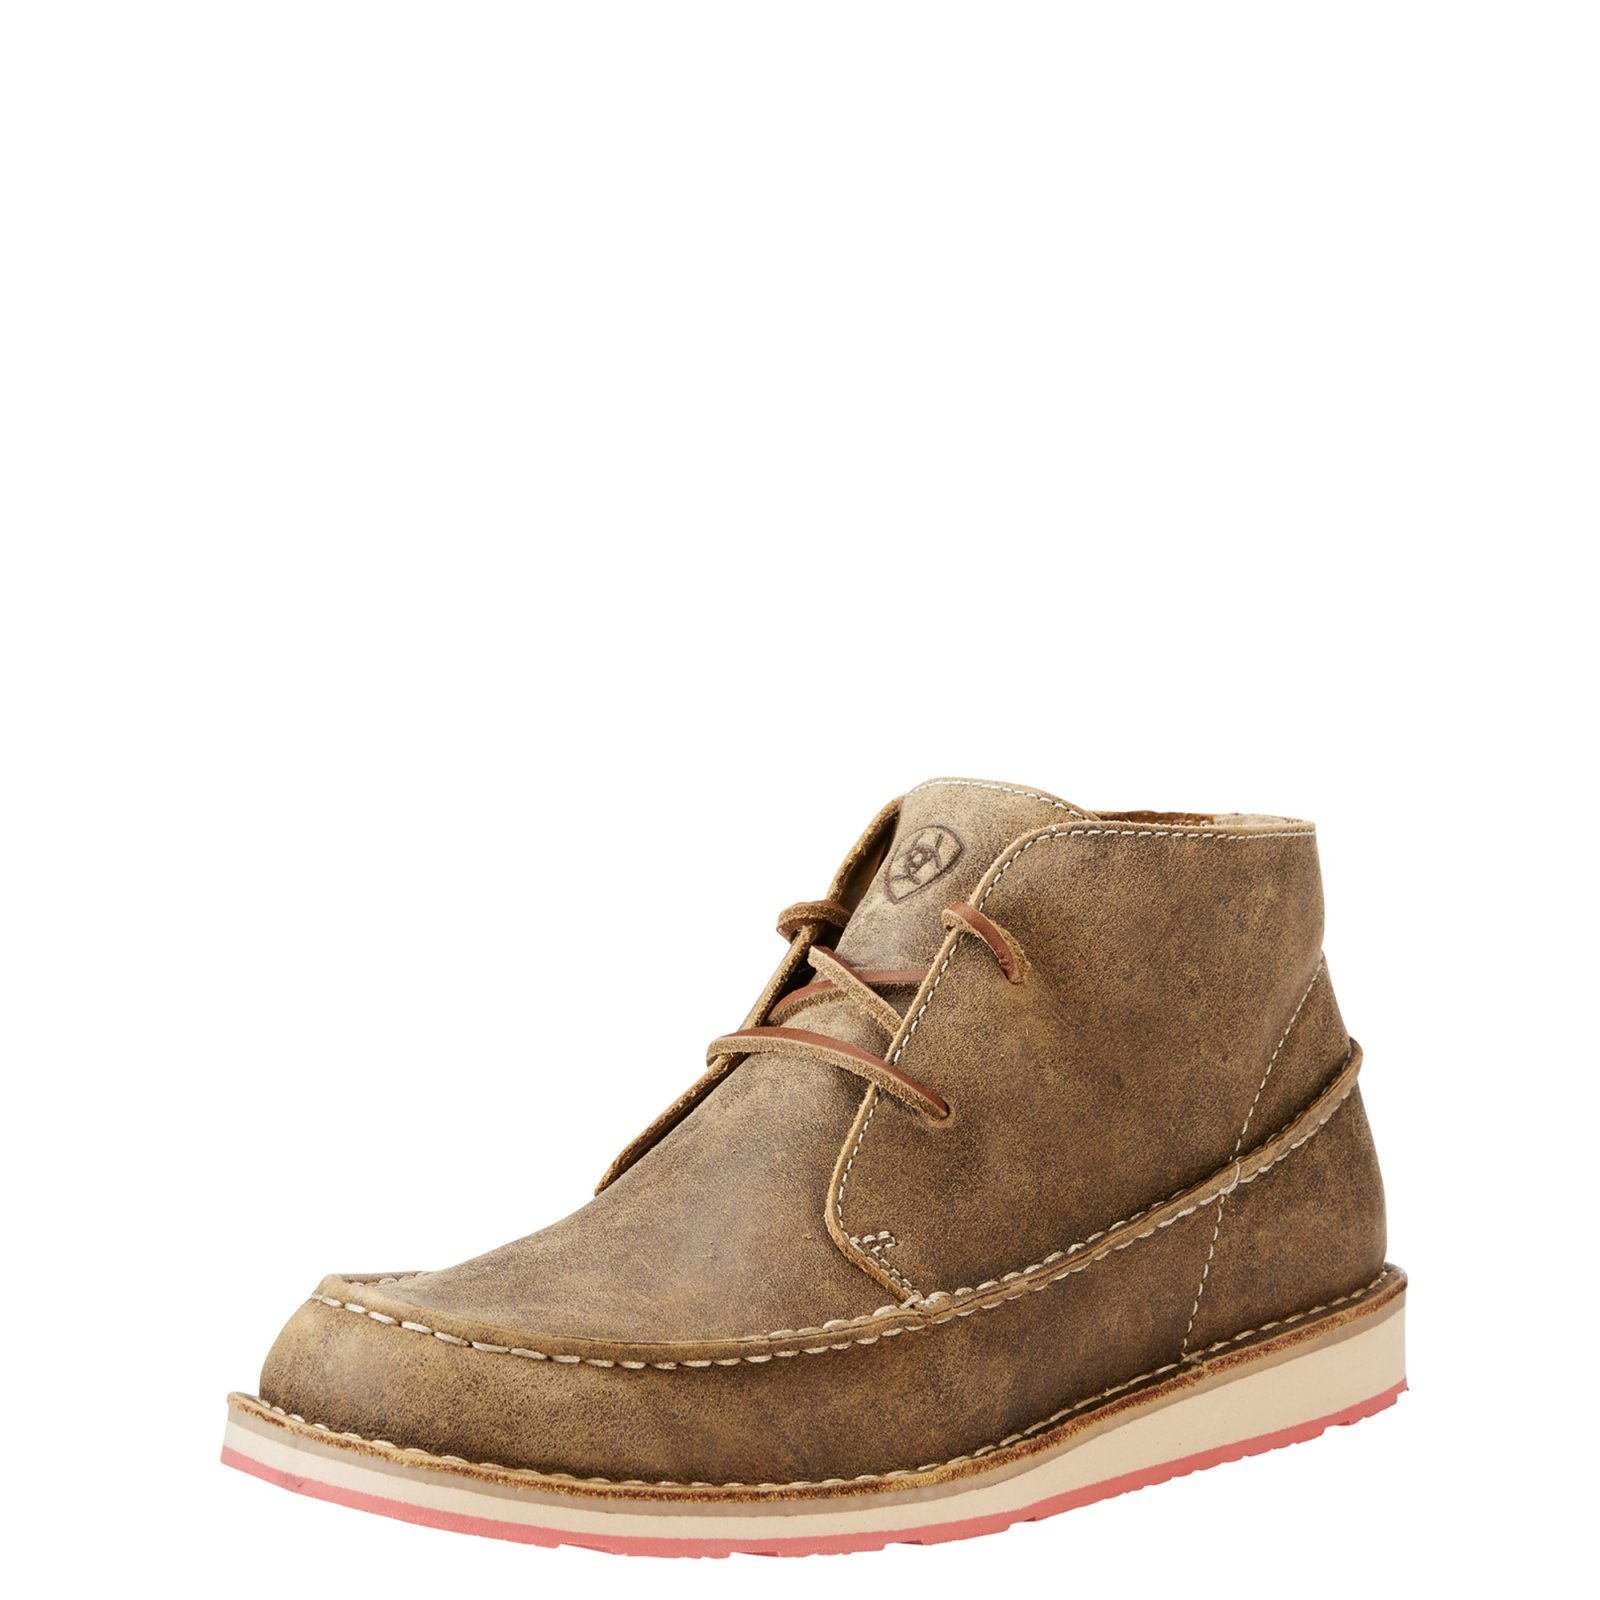 Cruiser Lace Chukka from Ariat